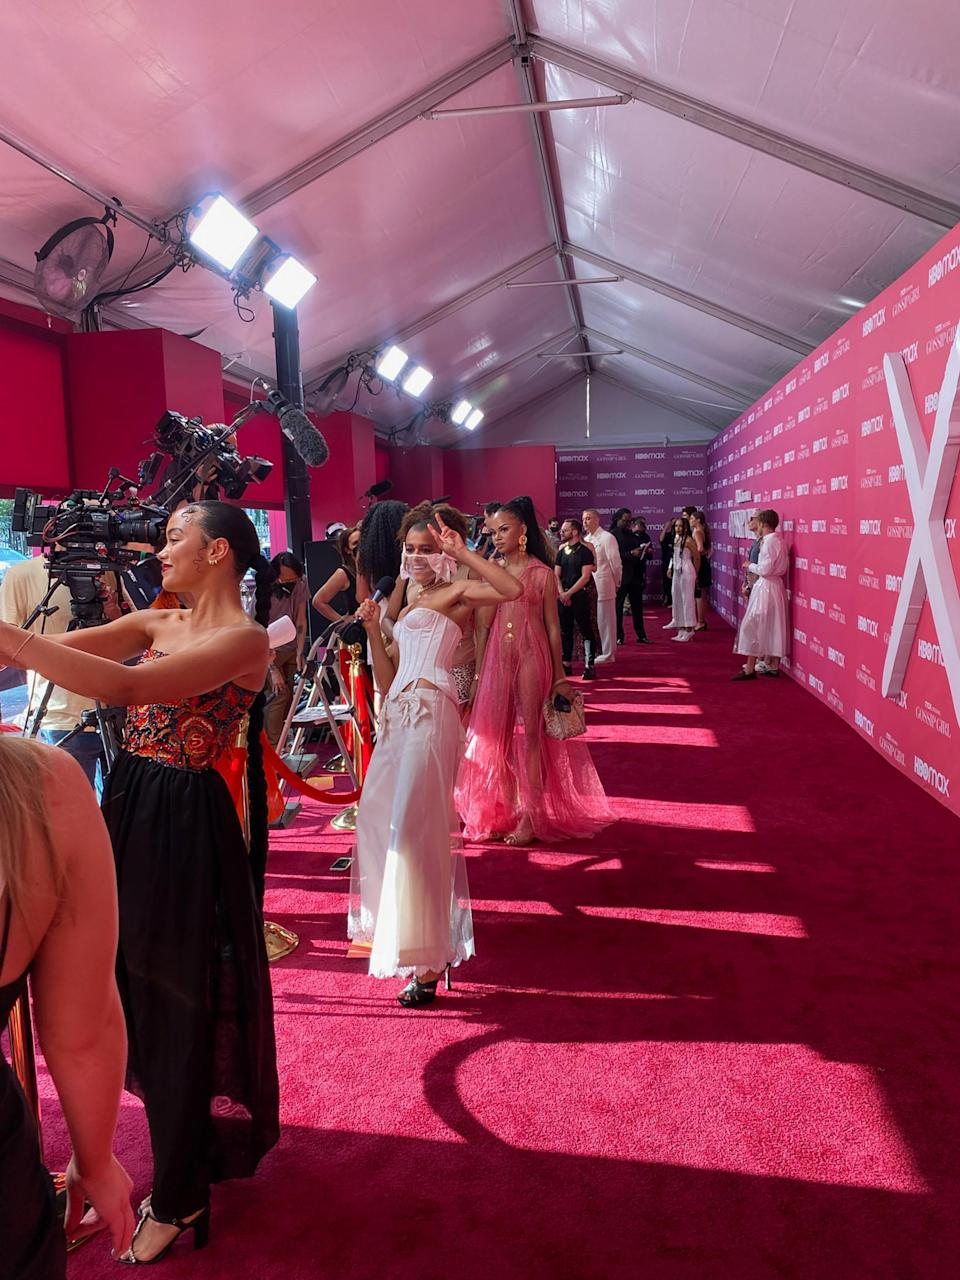 Sisterly love! Selfie with Jordan on the pink carpet! I peep Josh & Karena making an appearance in the background, too.